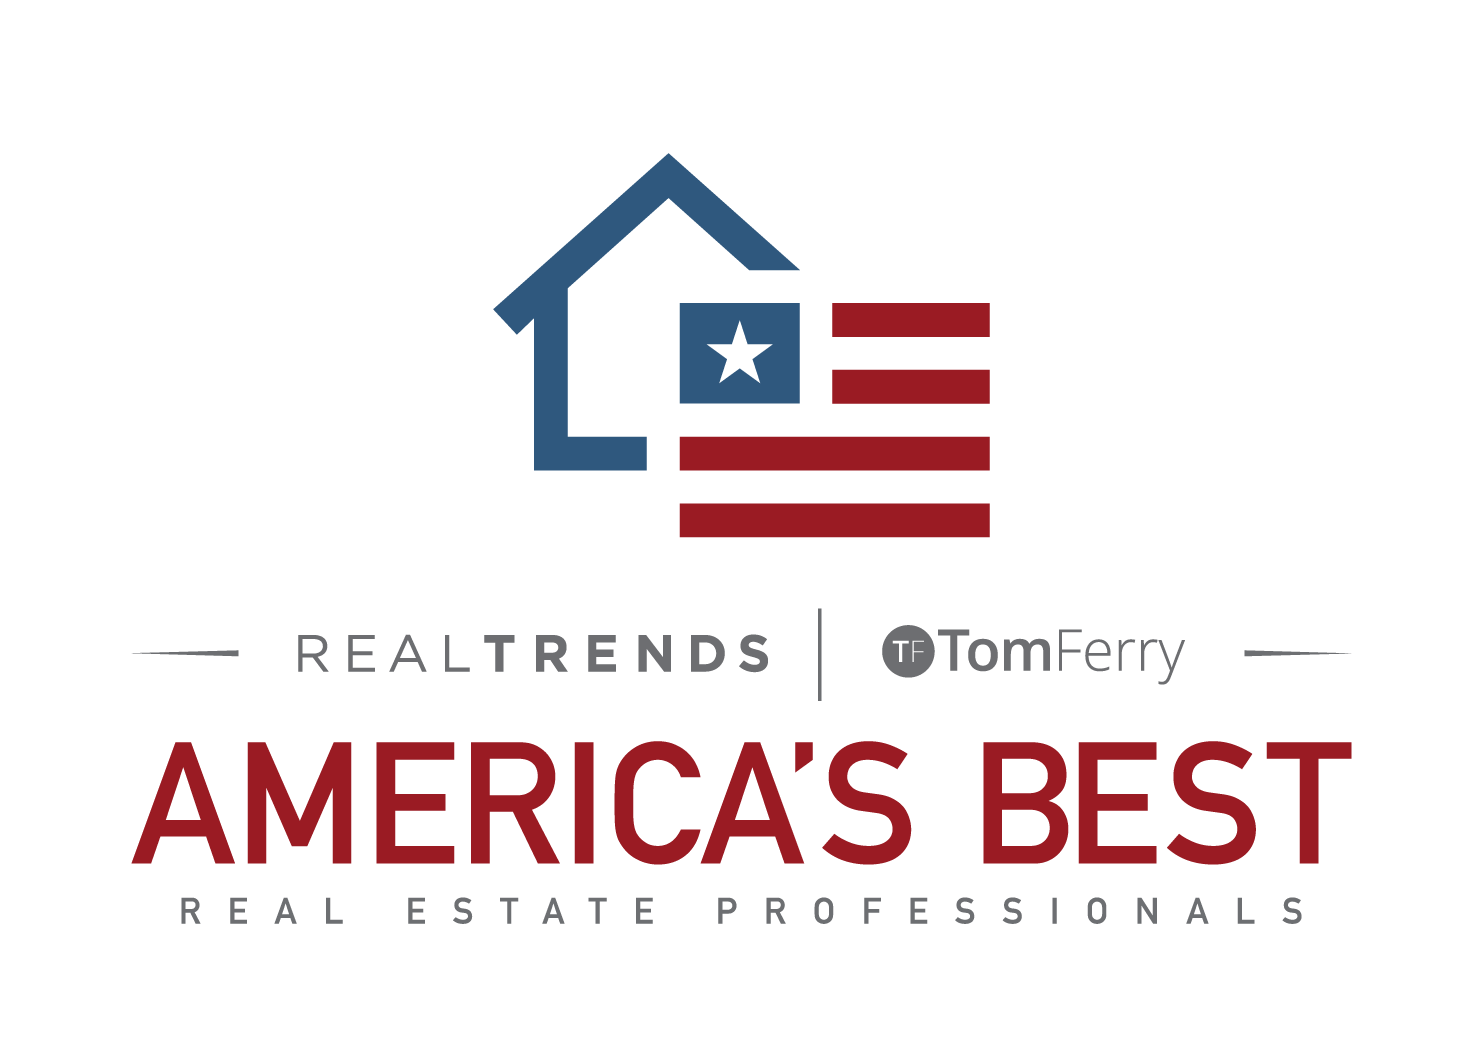 MEL FOSTER CO. AGENTS NAMED AMERICA'S BEST REAL ESTATE PROFESSIONALS